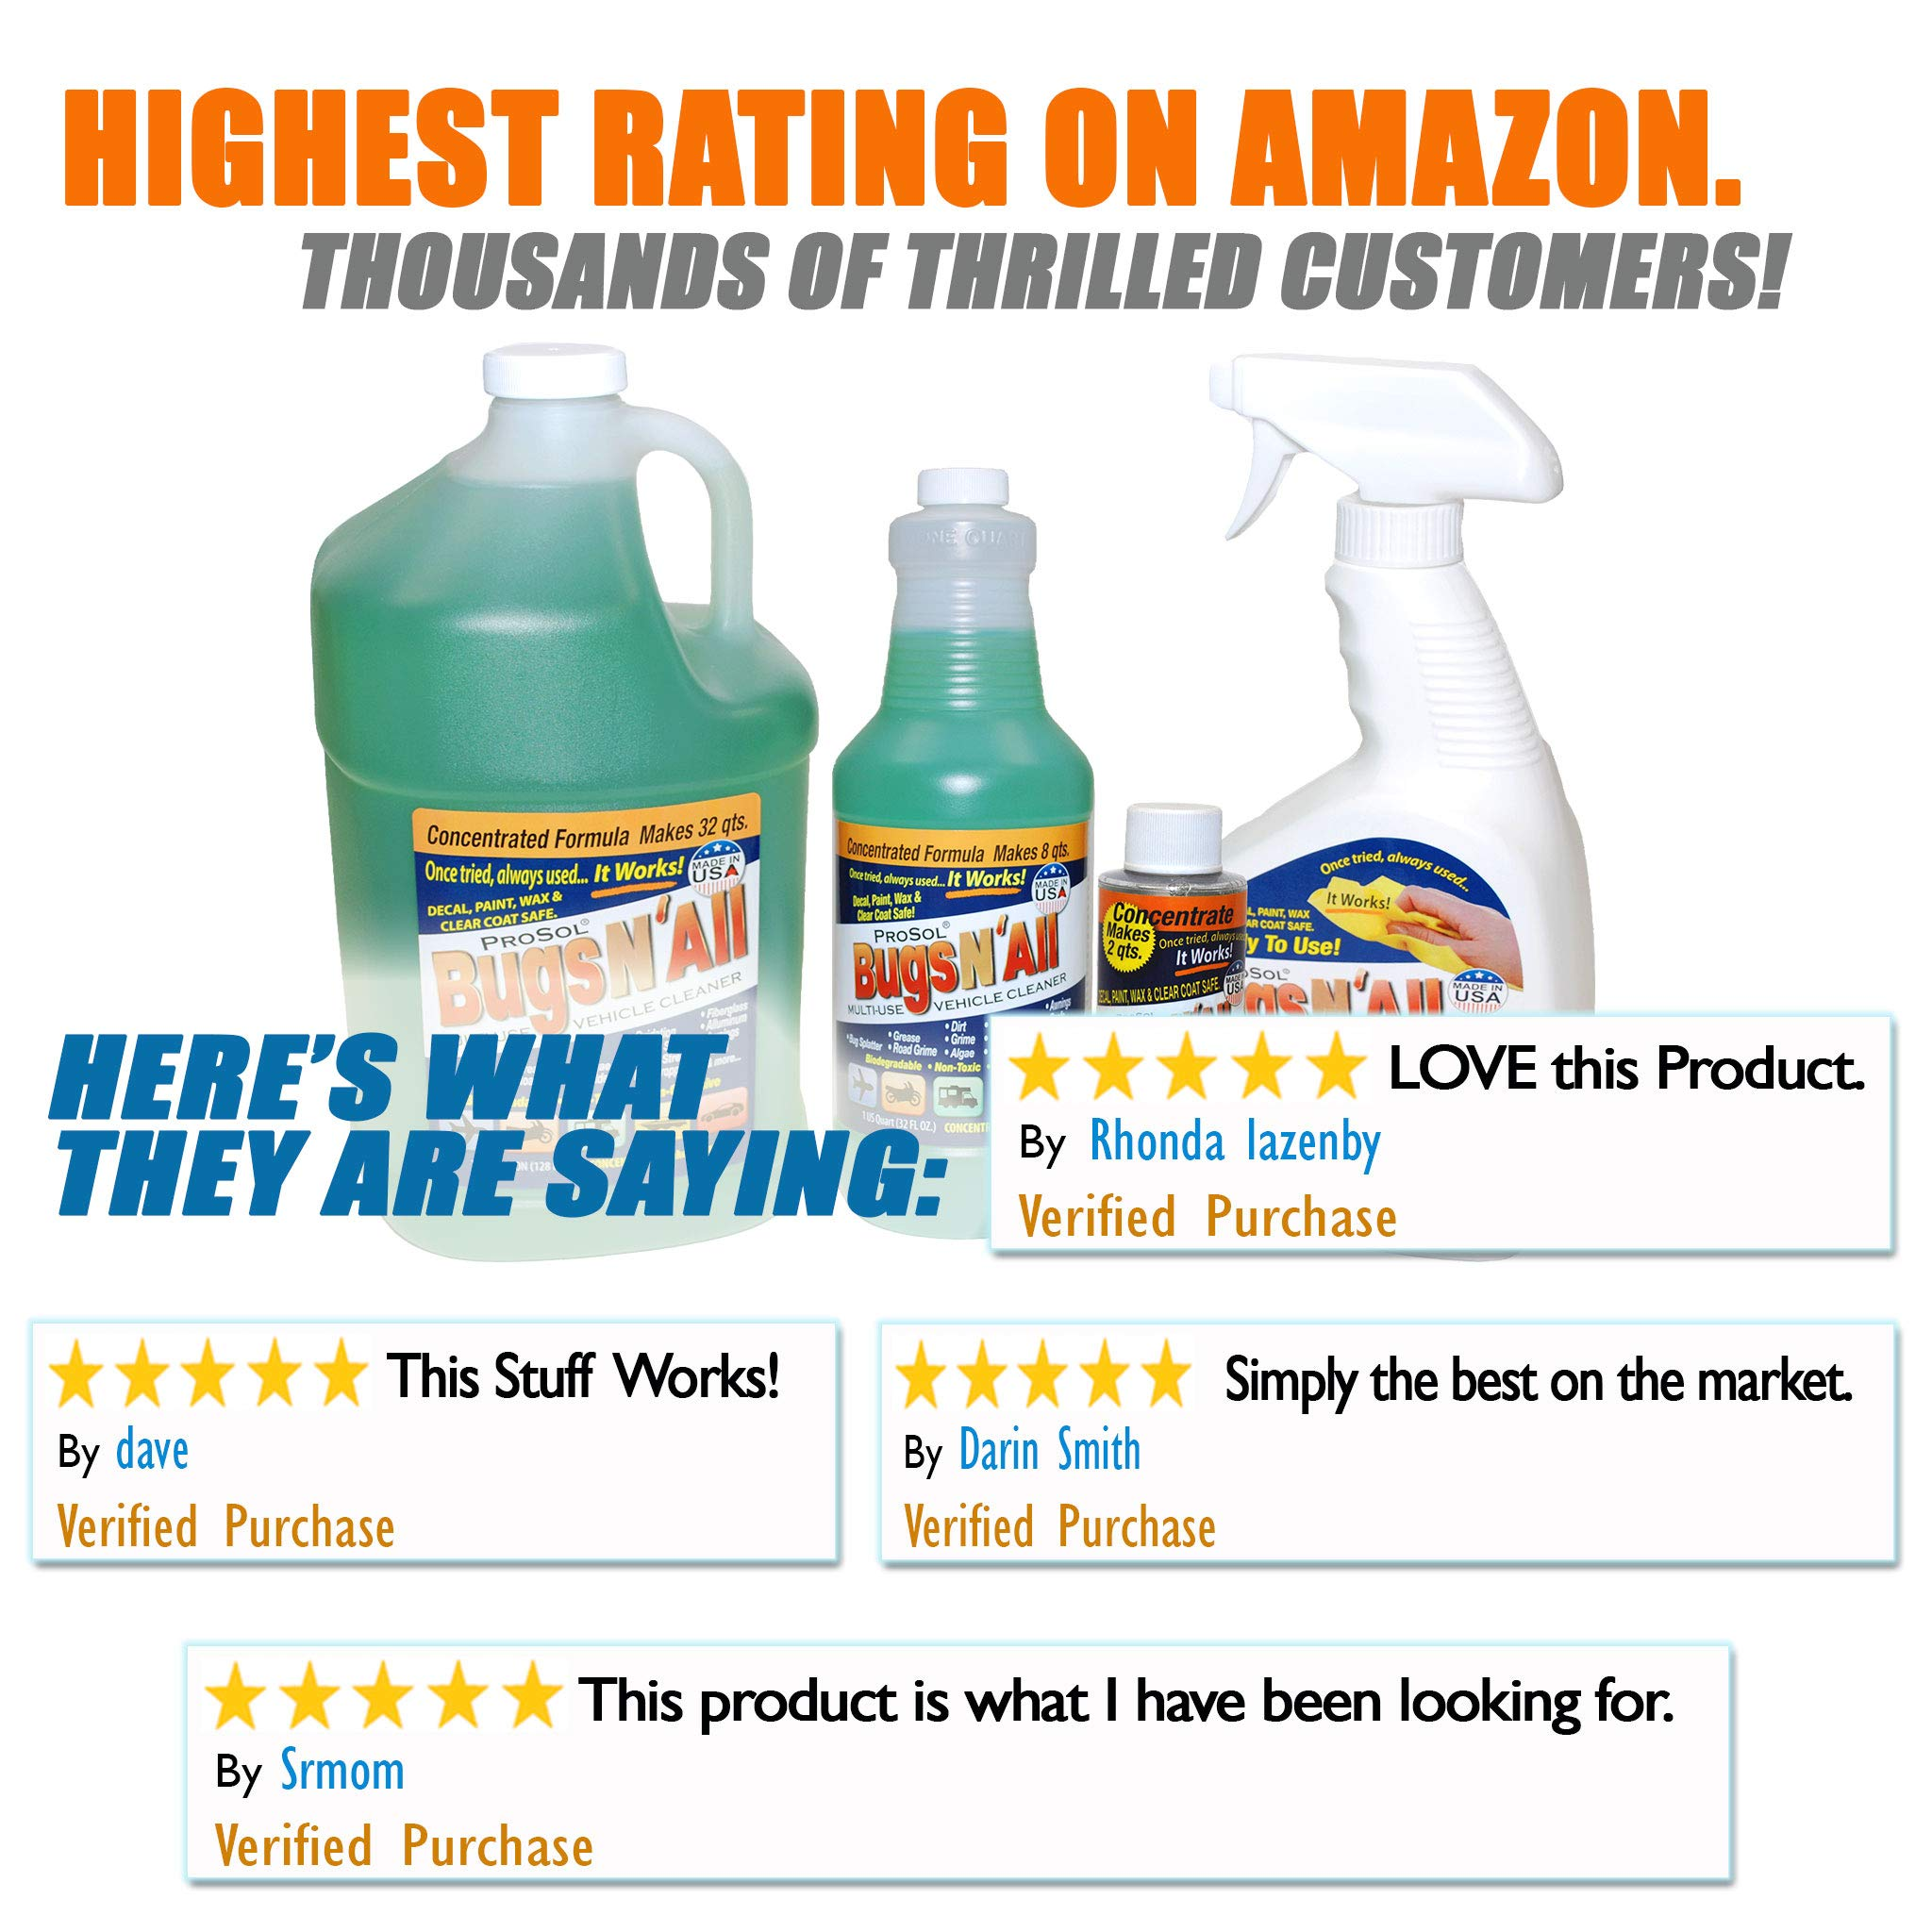 Bugs N All 1 Gal. Concentrate Makes 32 Qts. Pre-Wash Vehicle Cleaner - Bug Splatter and Black Streak Remover. Includes an Empty 32 oz. Spray Bottle - Will Not Remove Wax! by ProSol (Image #6)